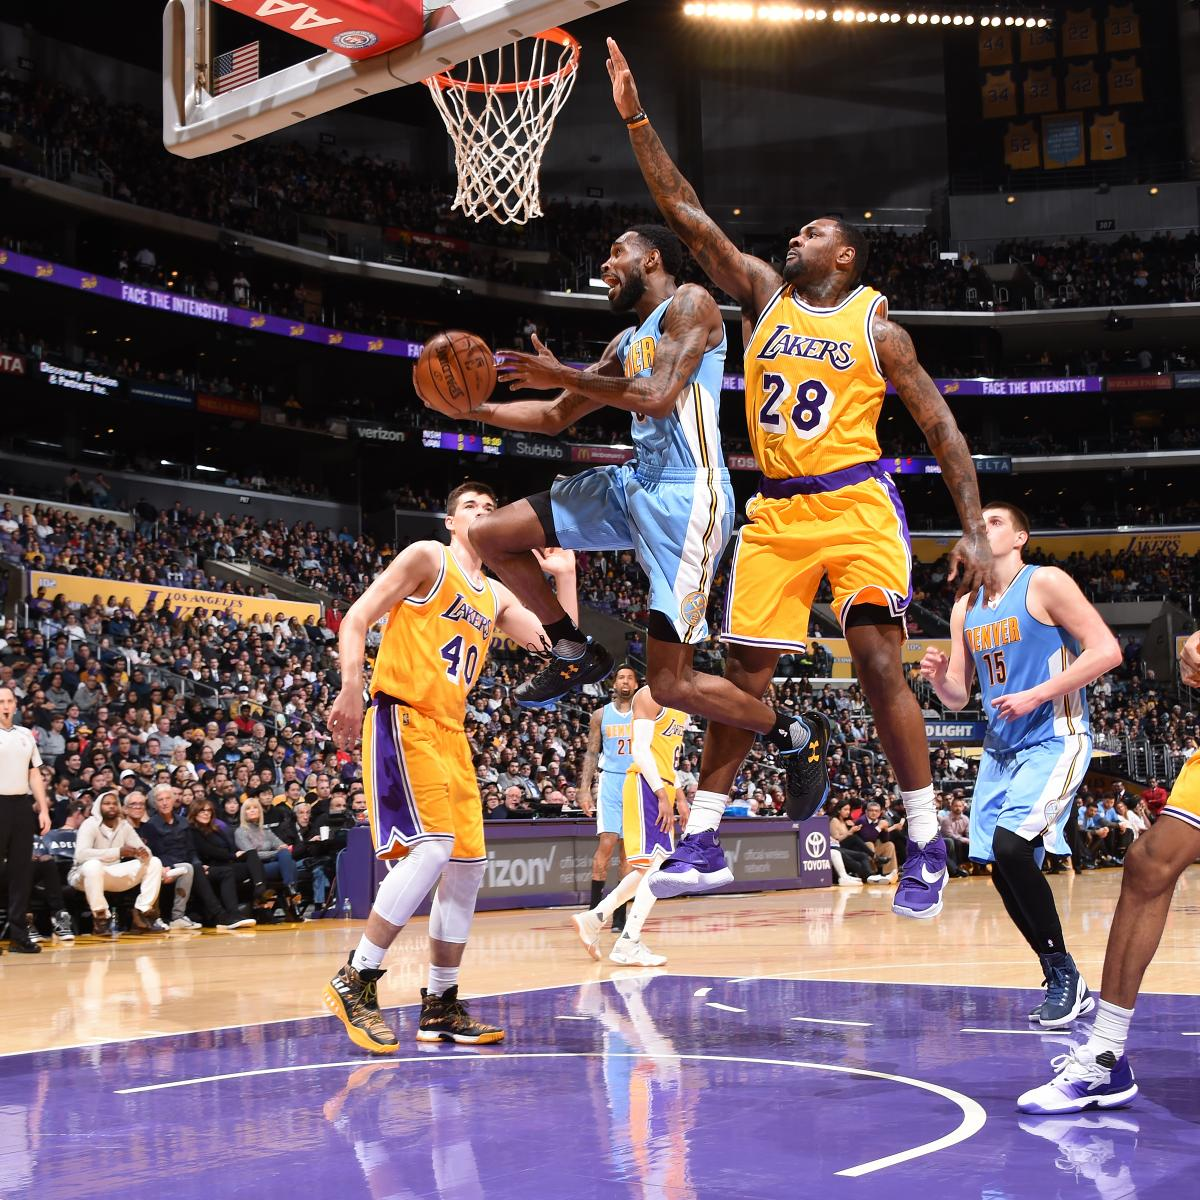 Nuggets Quarter Season Tickets: Nuggets Vs. Lakers: Score, Highlights, Reaction From 2017